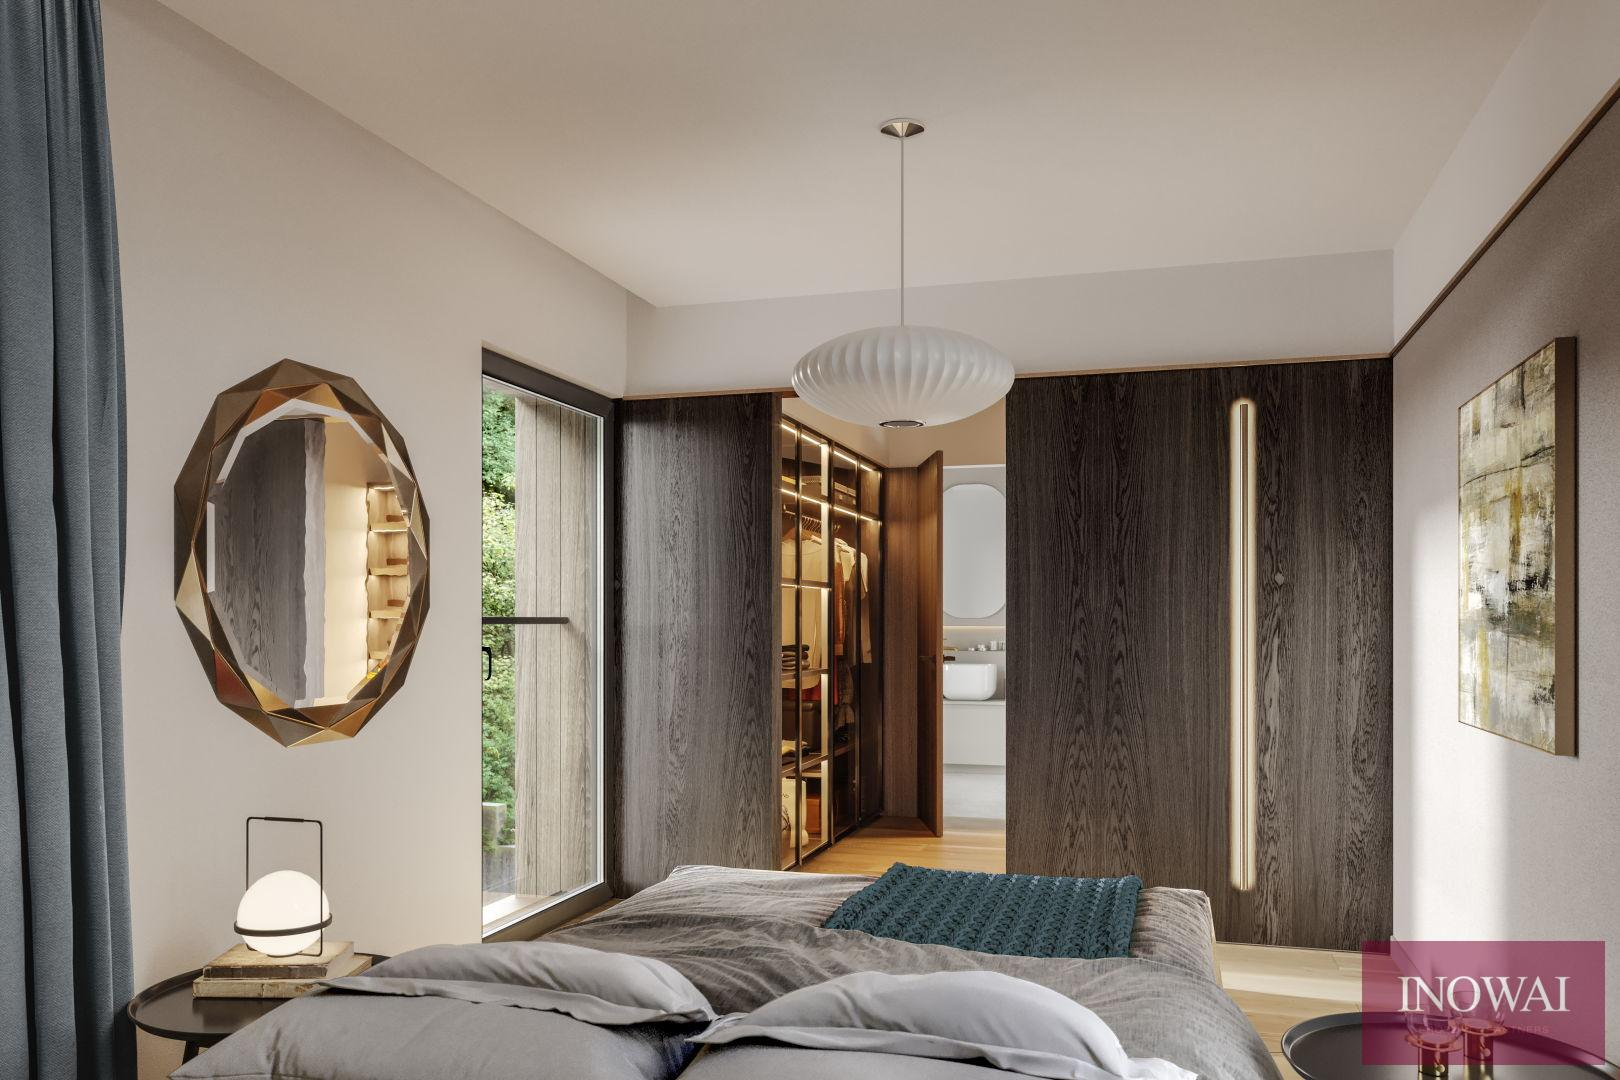 Appartement 2 chambres - projet ROCKWOOD